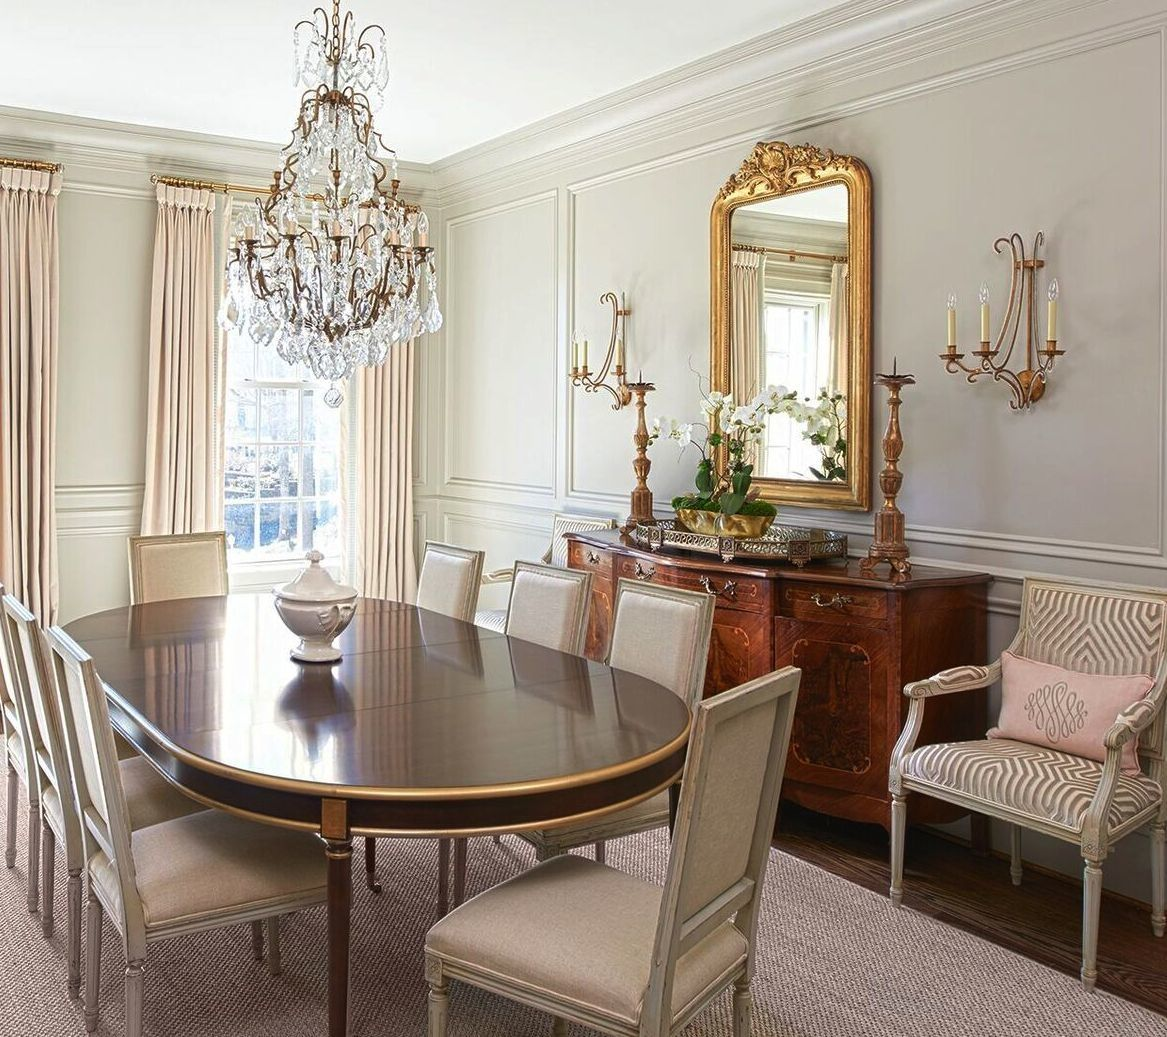 25 Elegant And Exquisite Gray Dining Room Ideas: Modern Elements + Beautiful Antiques = An AMAZING Home